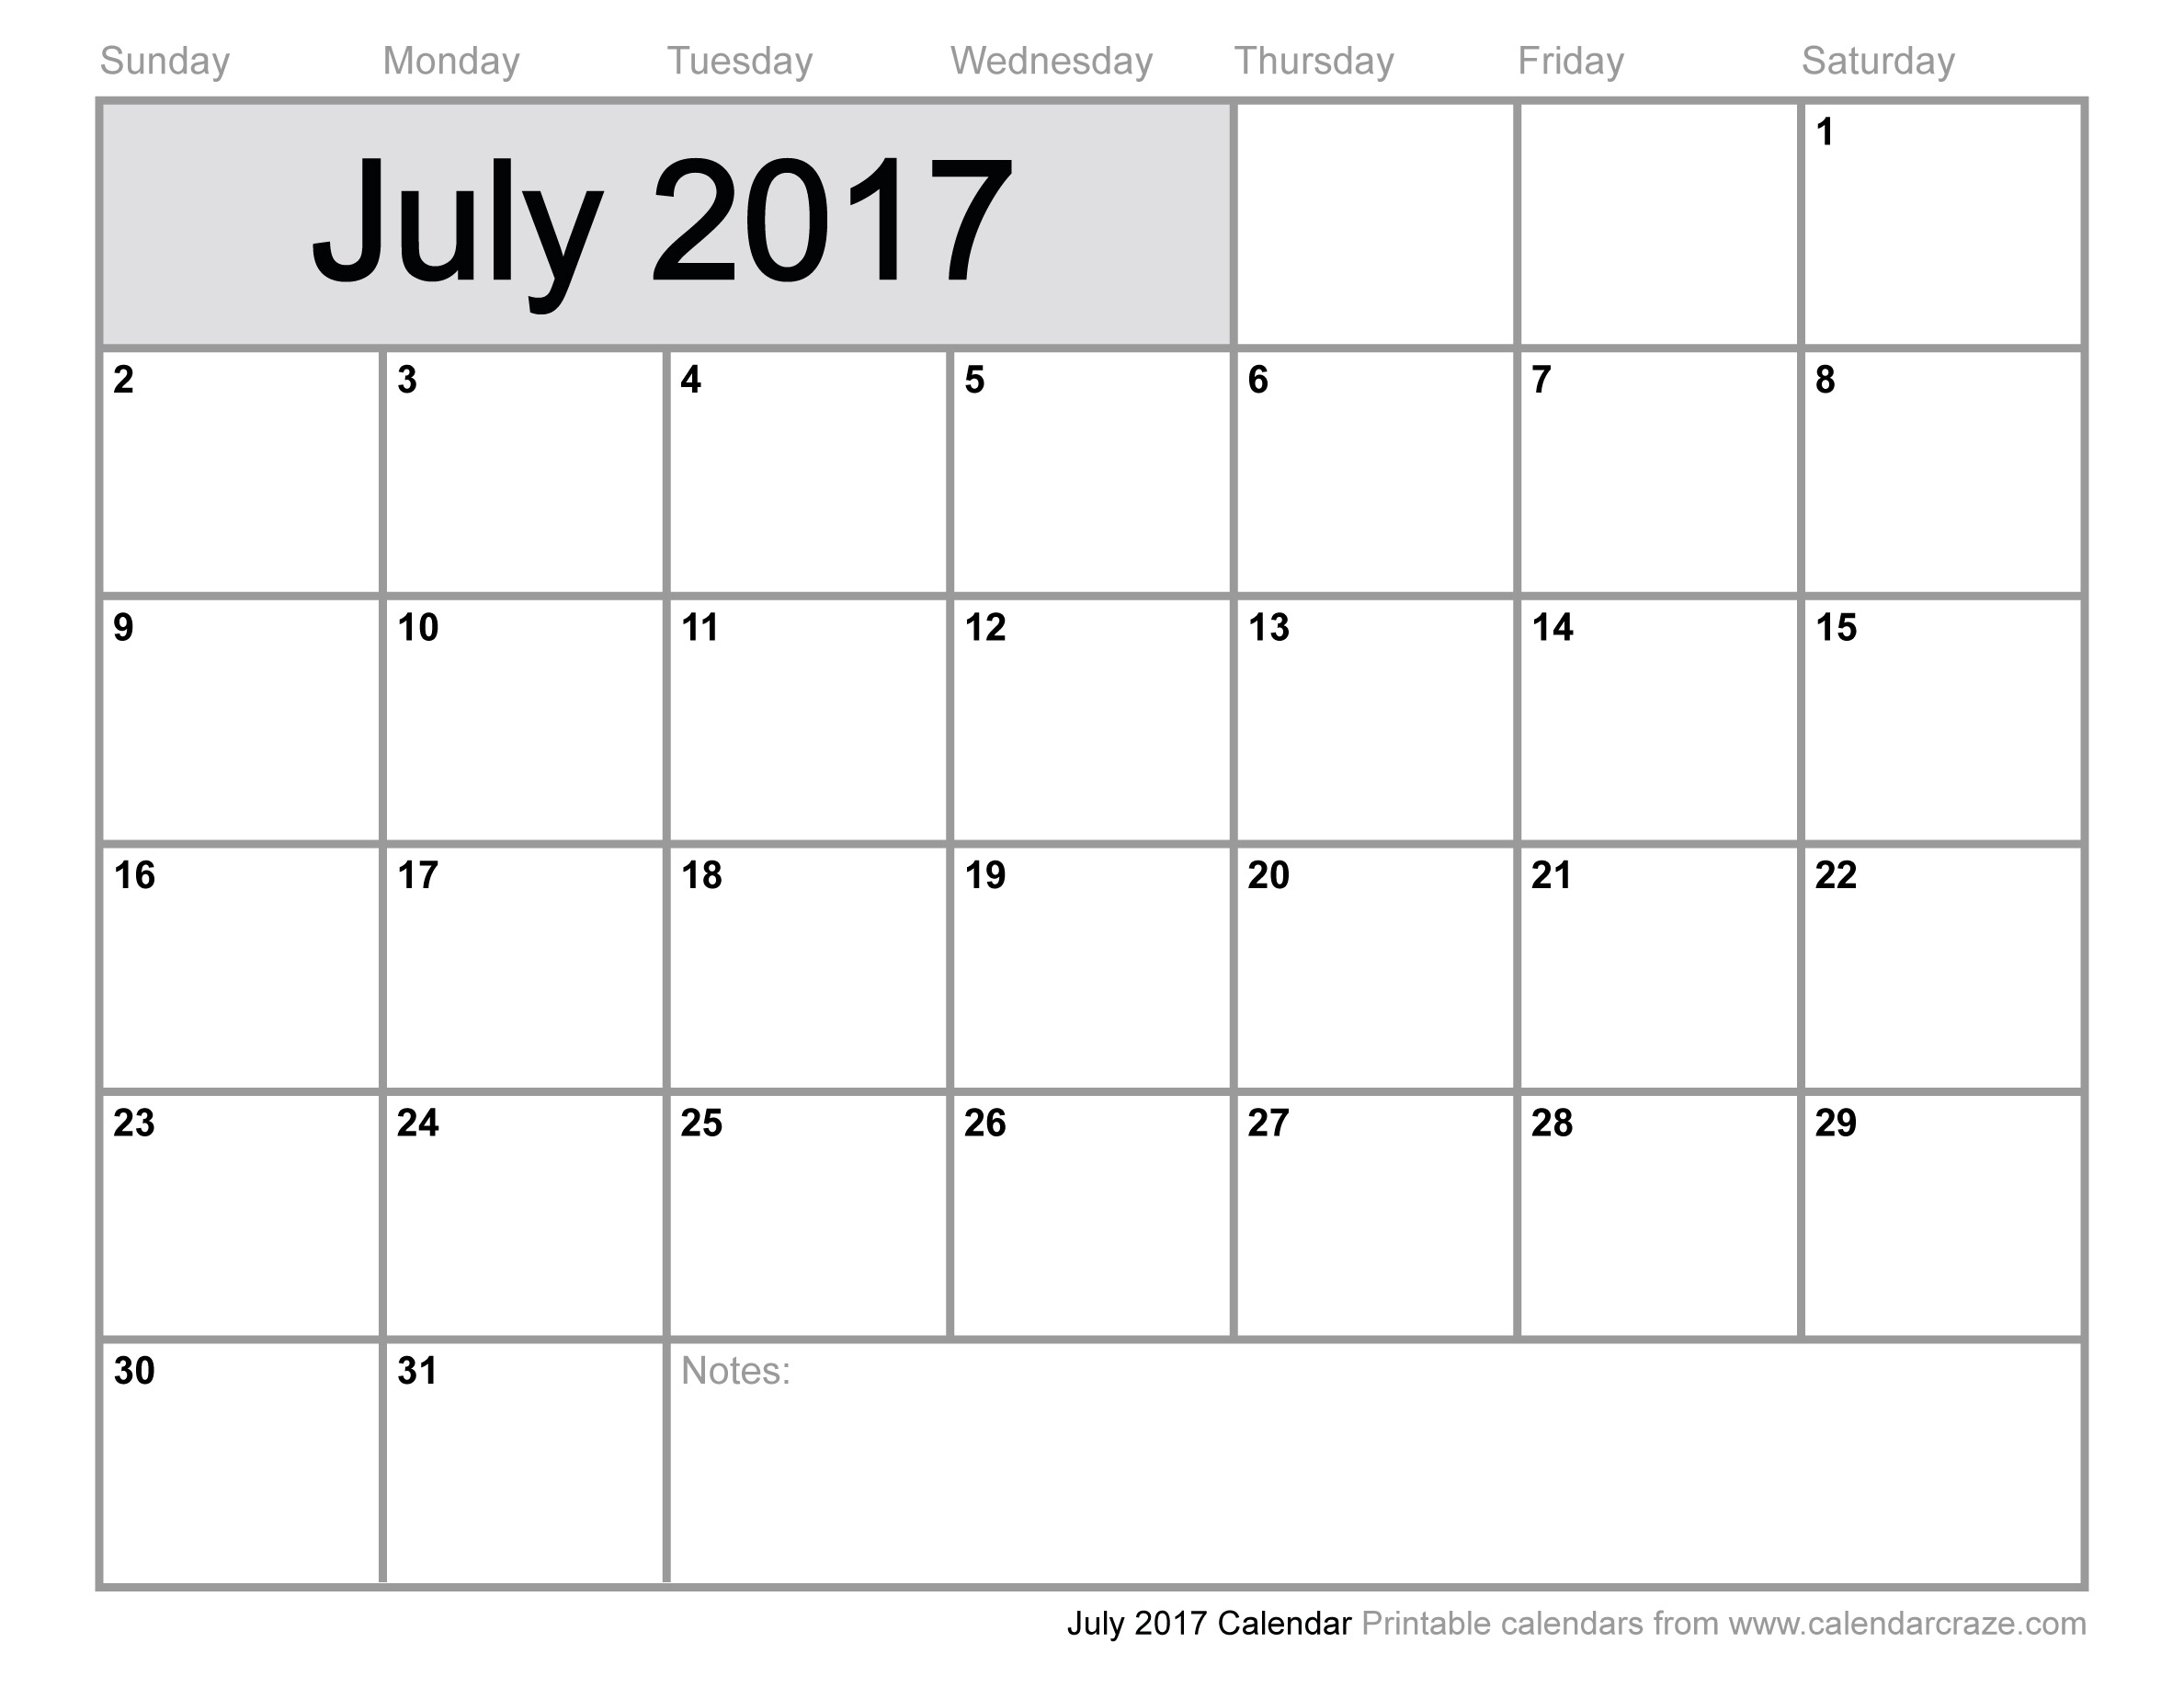 July 2017 Calendar Template | weekly calendar template